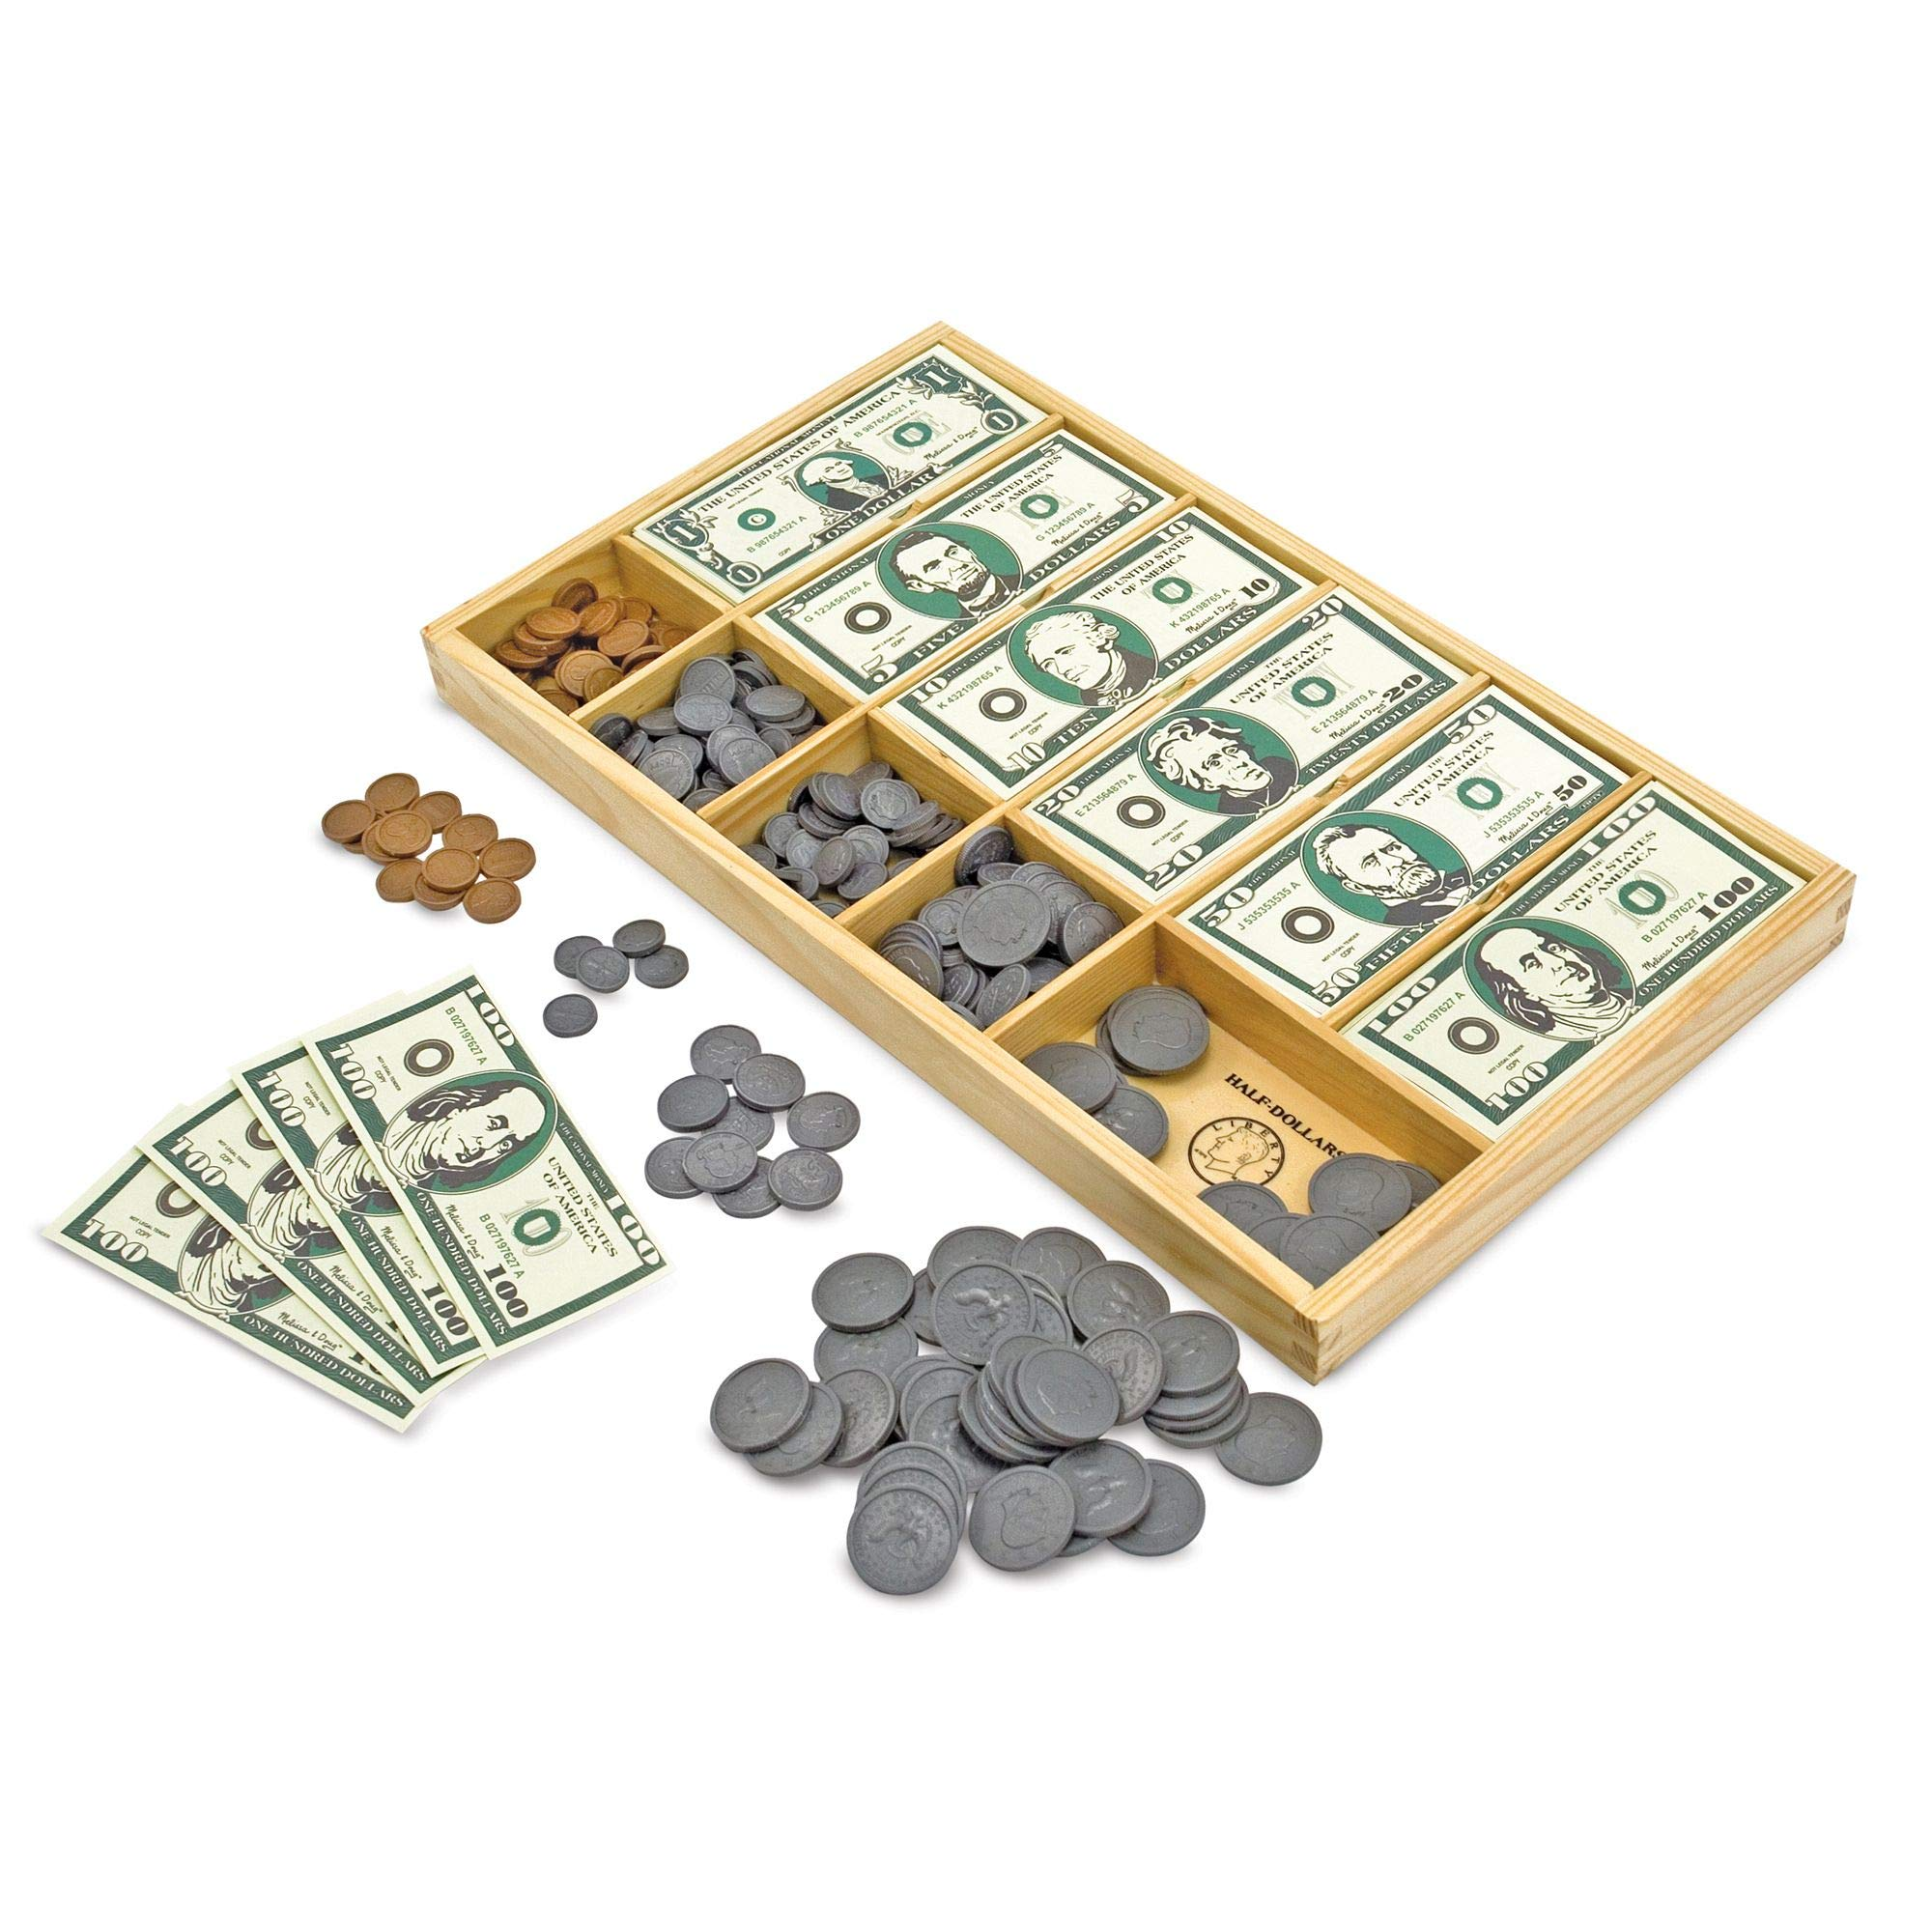 Melissa & Doug Classic Play Money Set (Developmental Toys, 50 of Each Denomination, Wooden Cash Drawer, Great Gift for Girls and Boys - Best for 3, 4, 5, 6, and 7 Year Olds) by Melissa & Doug